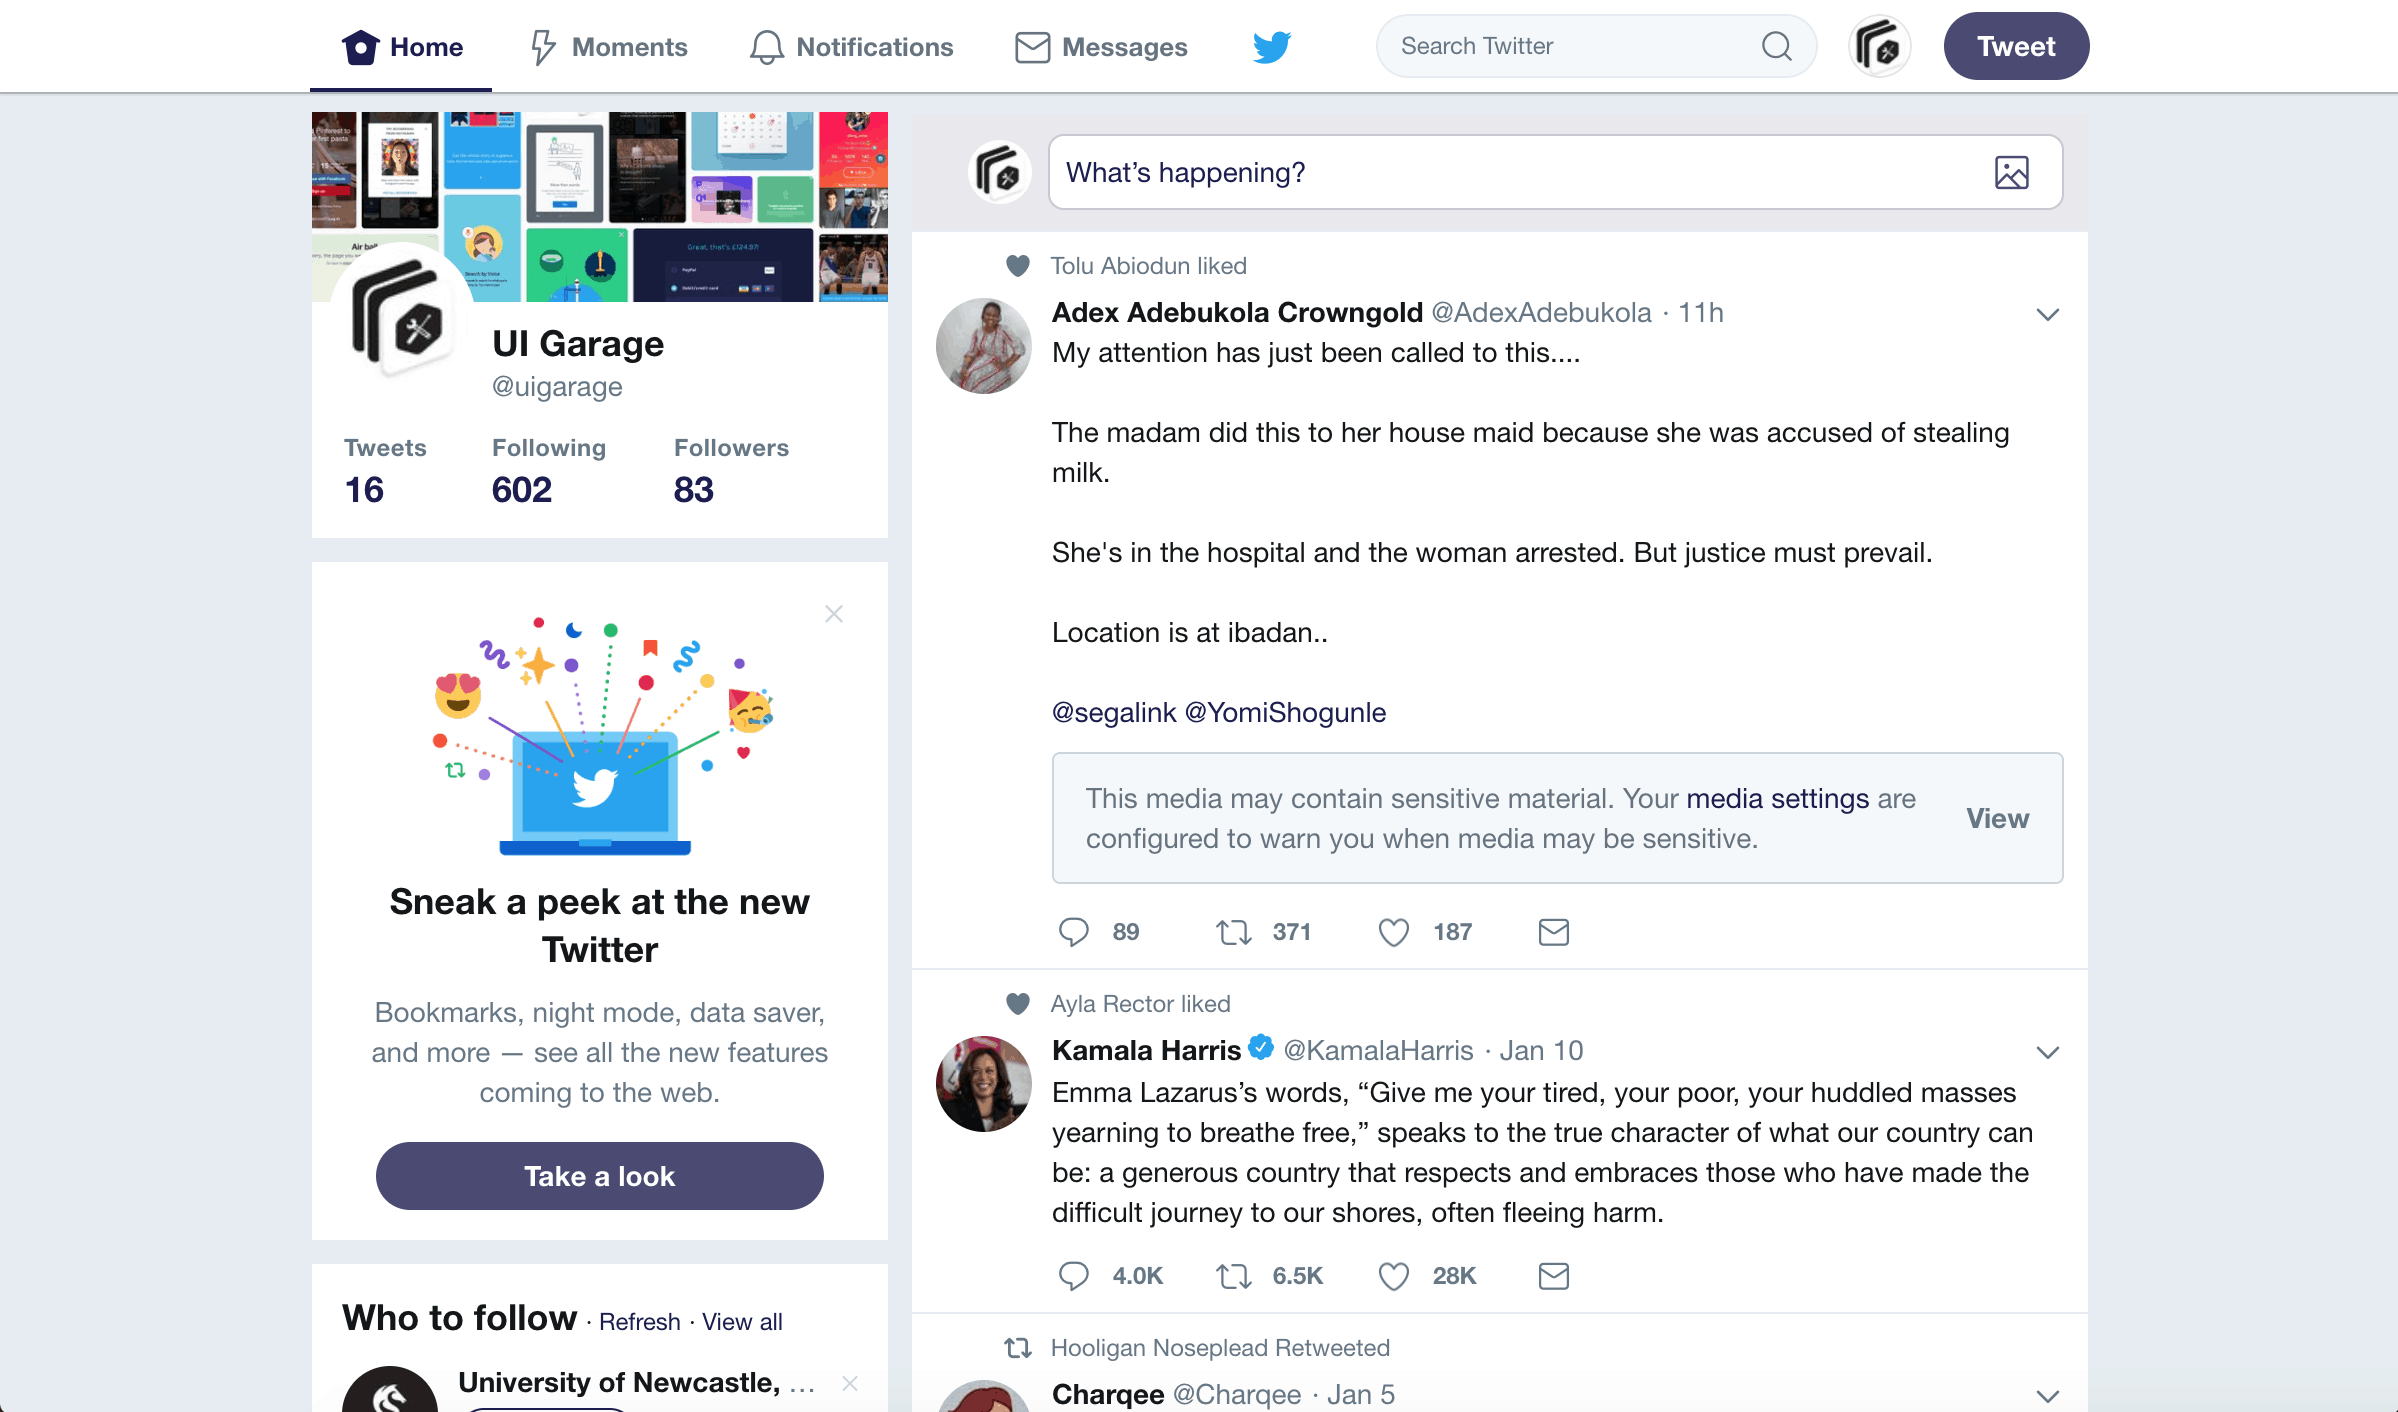 What's new by Twitter from UIGarage